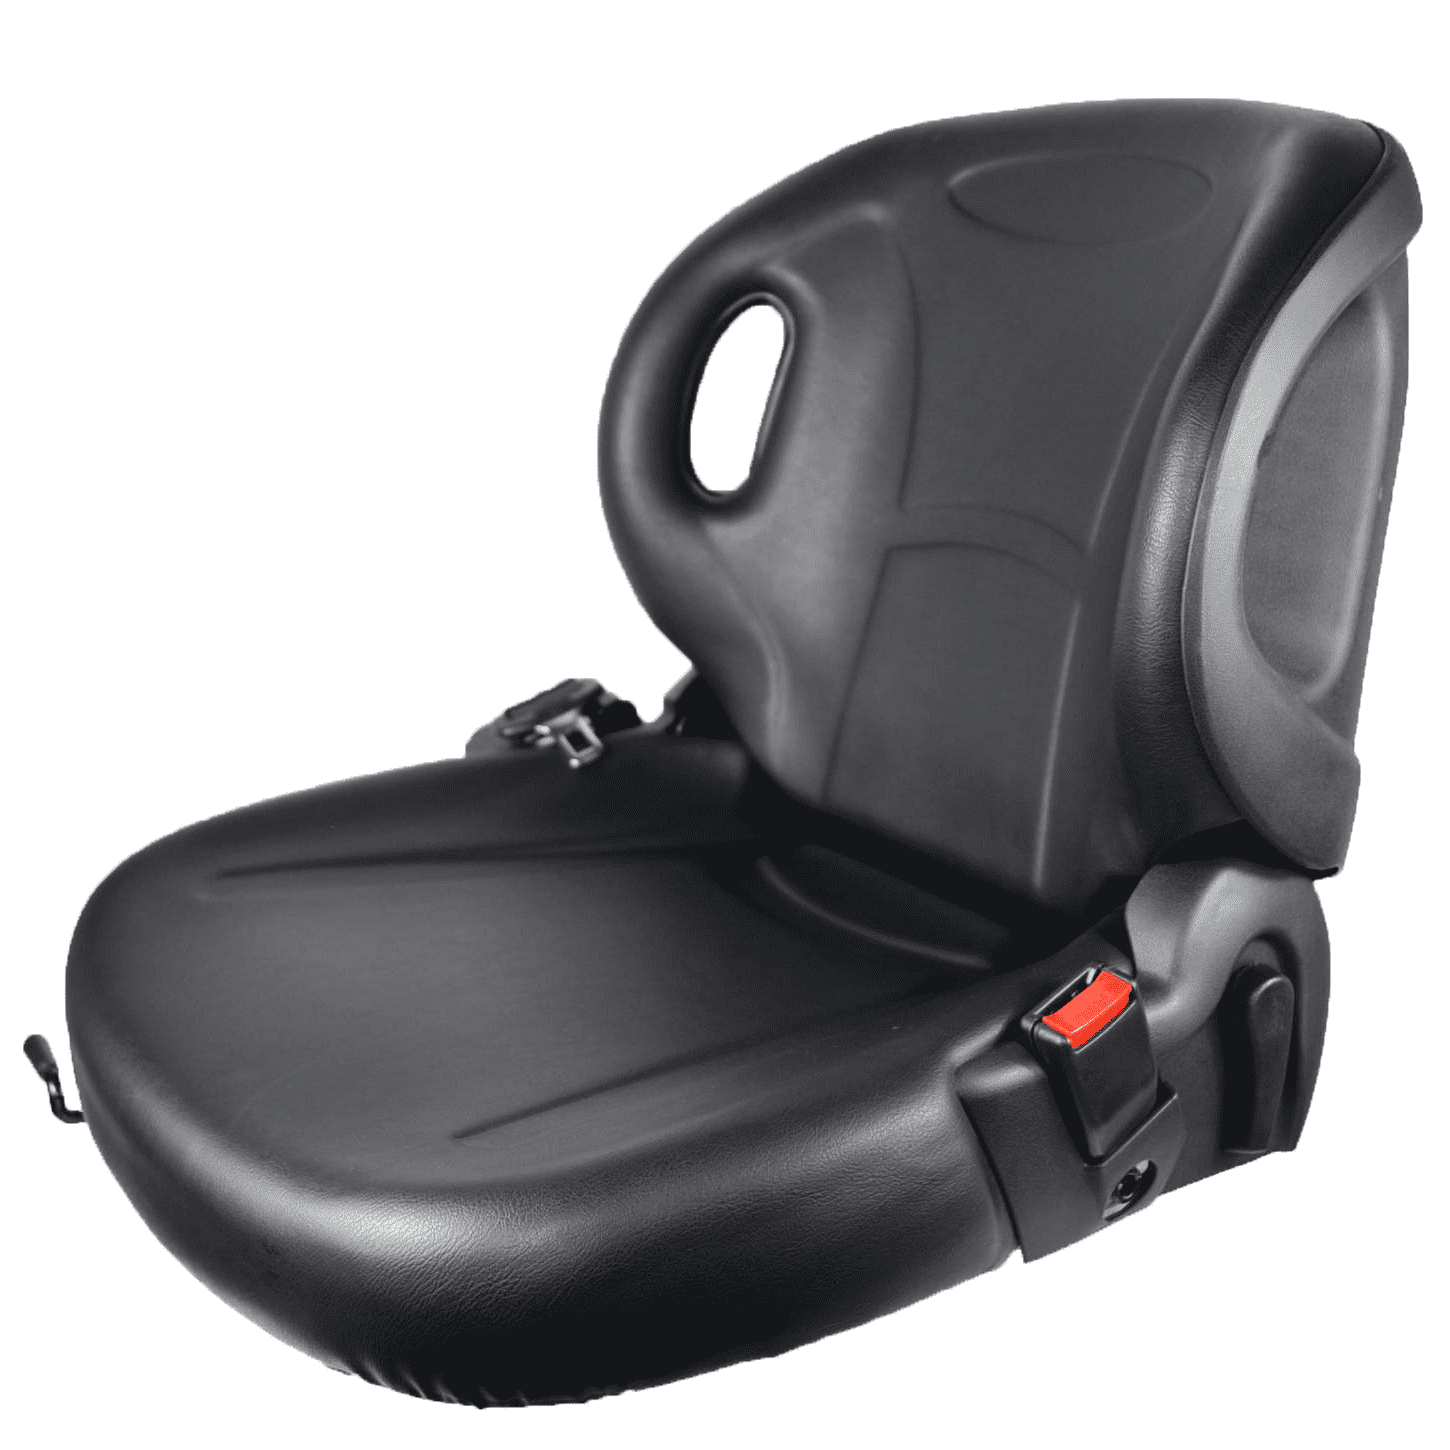 YY51 Forklift Seat Featured Image